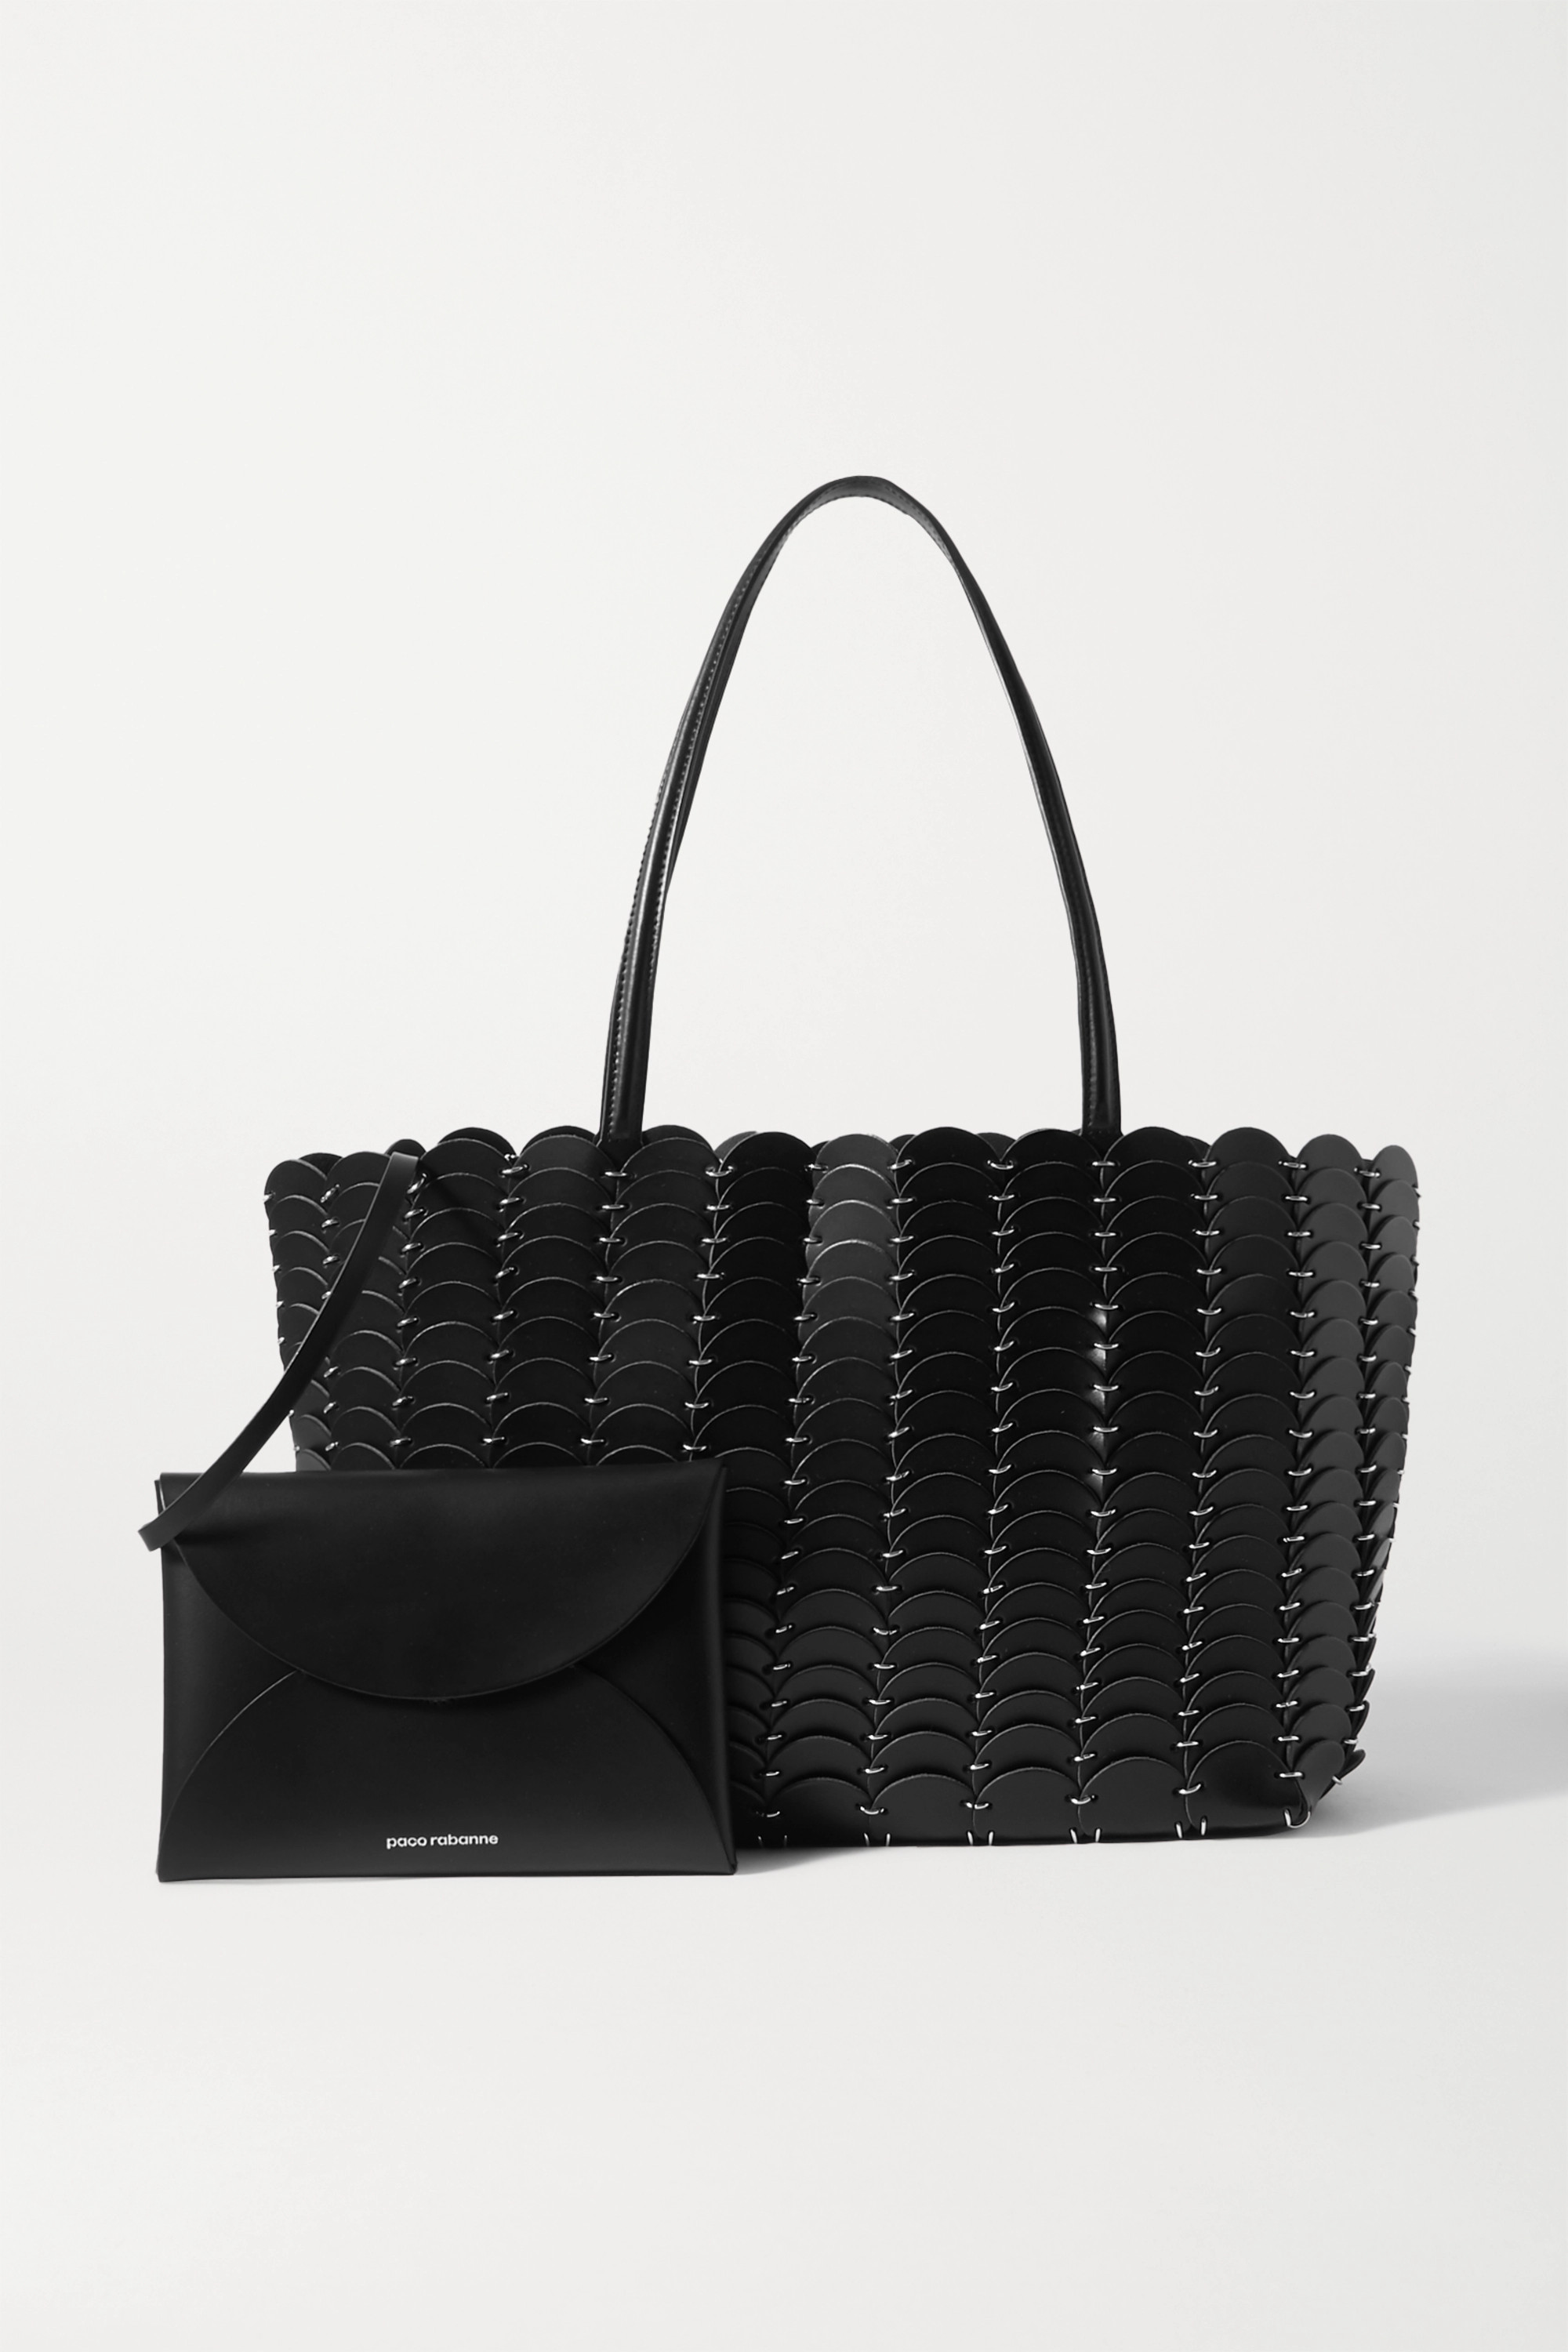 PACO RABANNE Leather tote